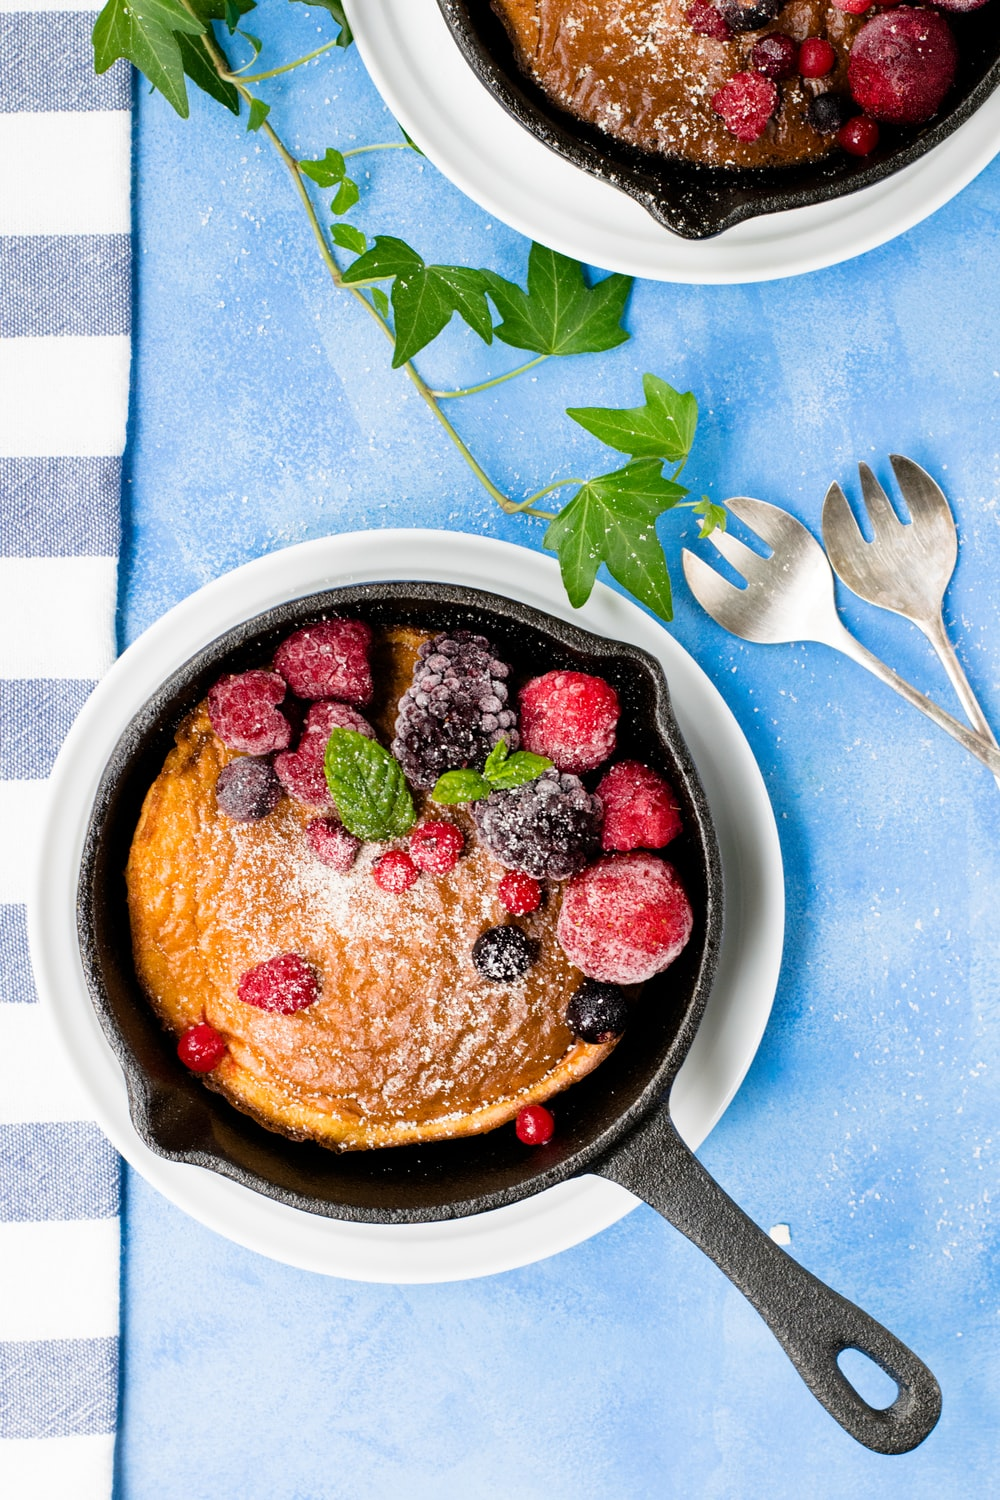 cooked pancake with raspberries and blueberries